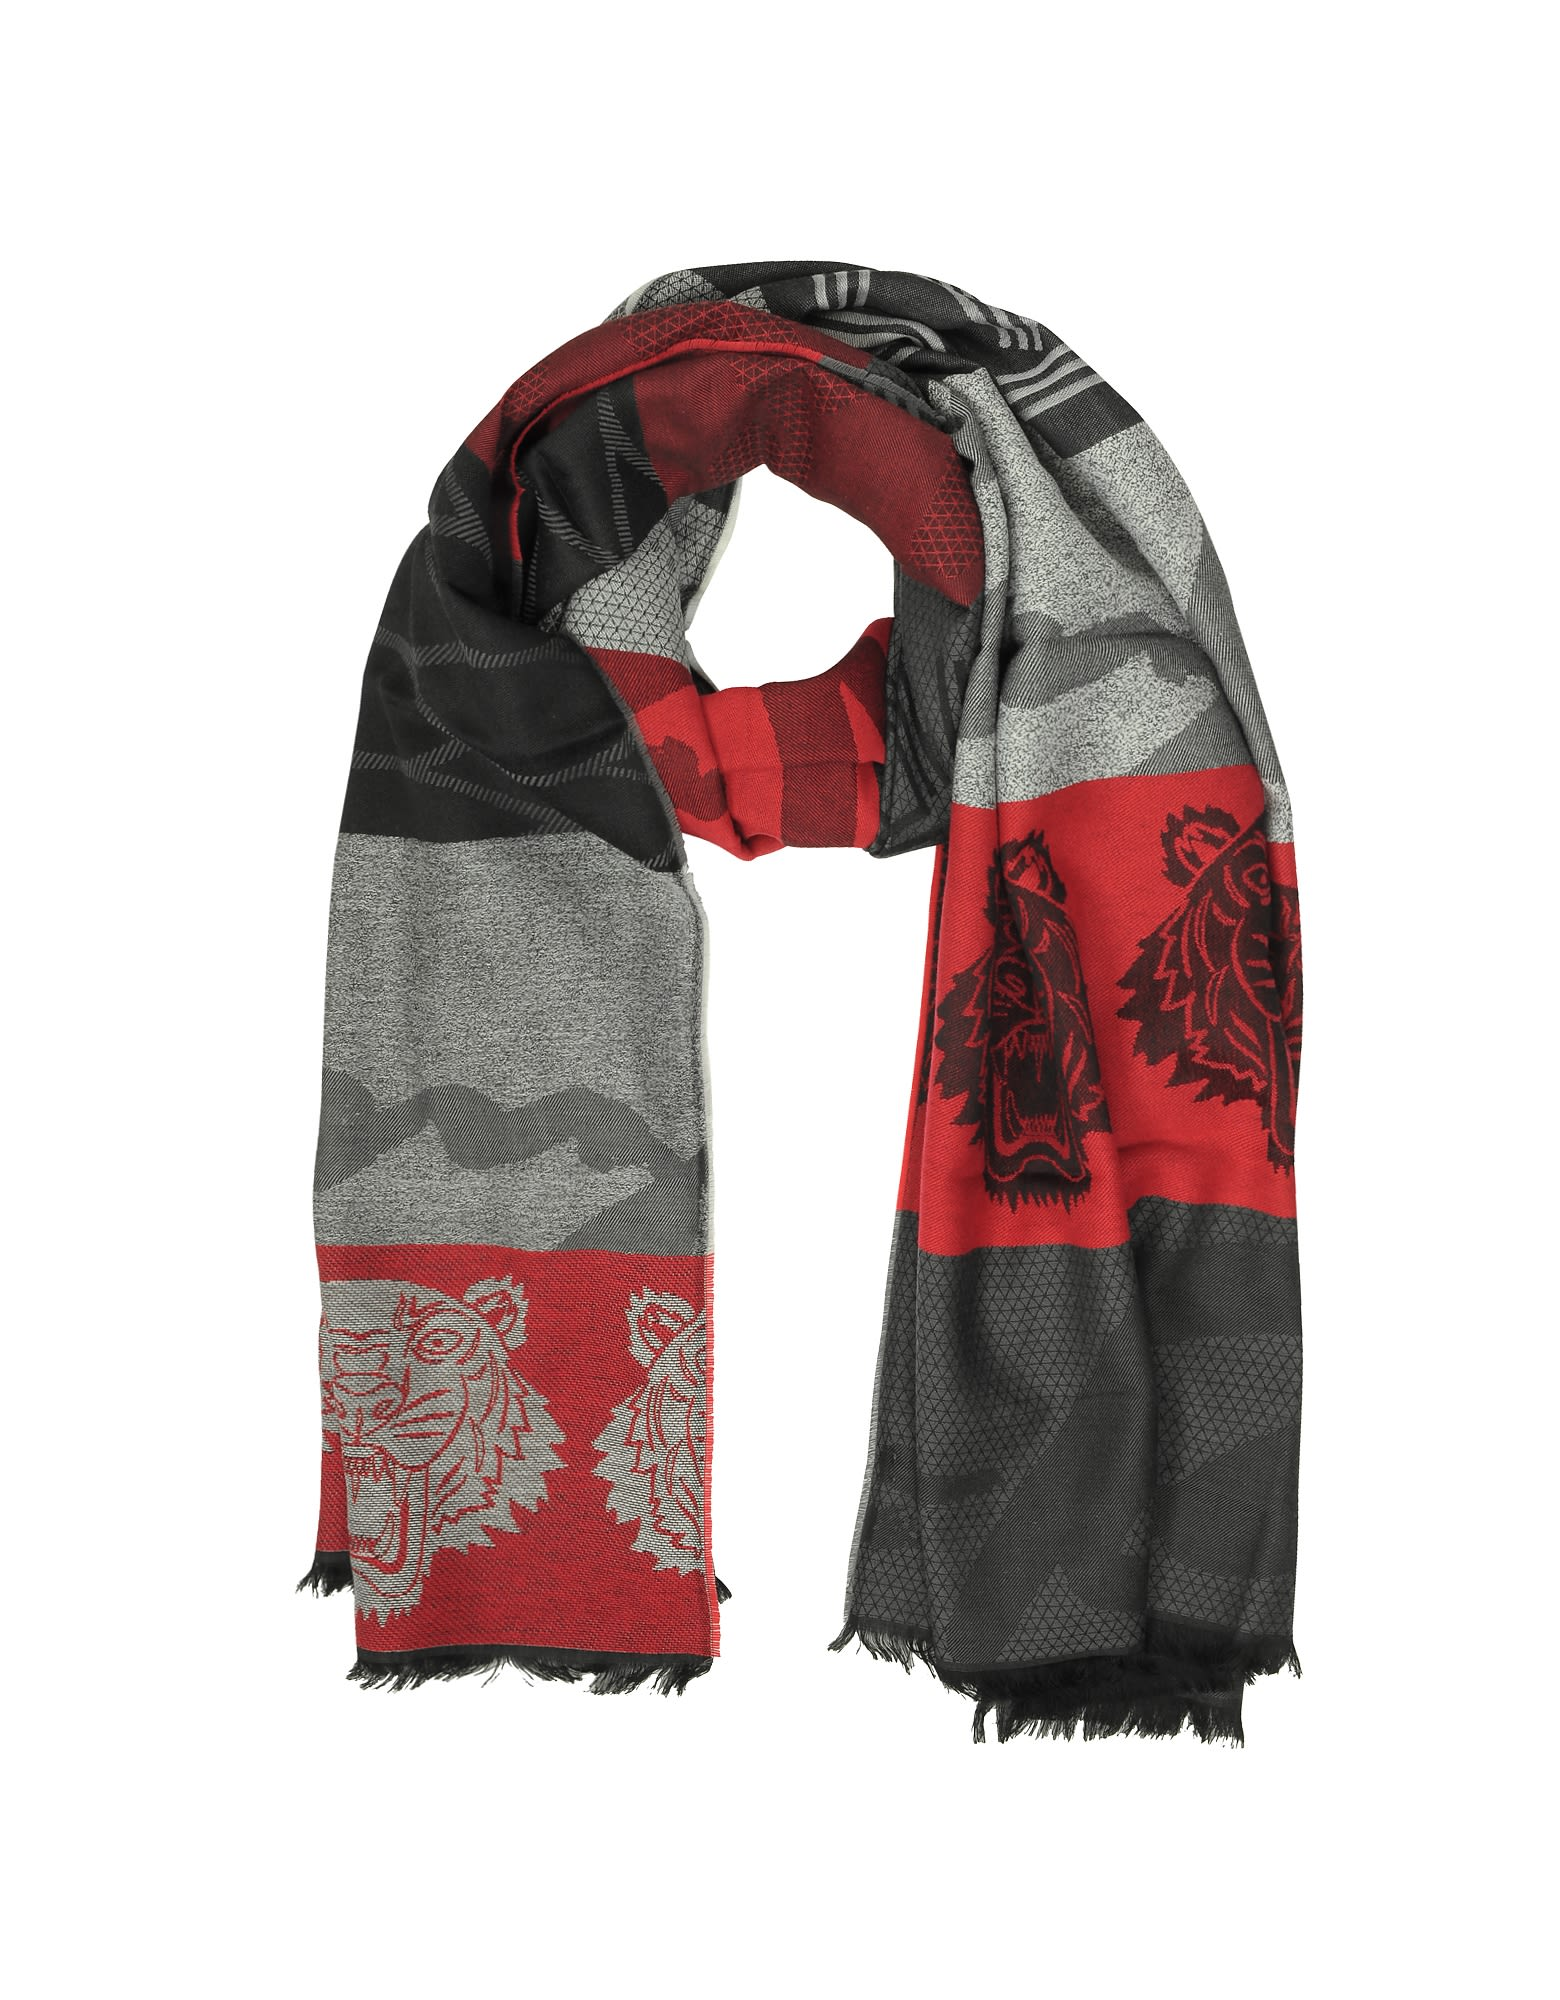 RED WOOL INTARSIA TIGER SCARF